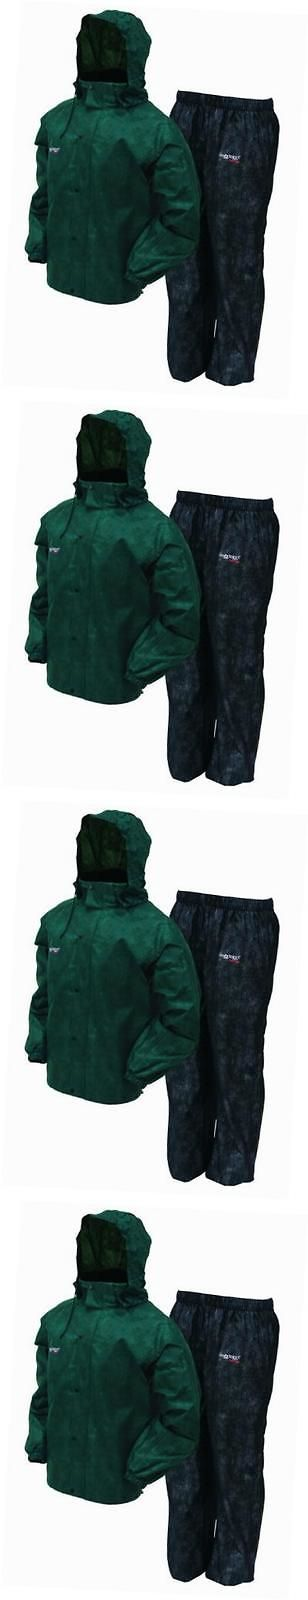 Jacket and Pants Sets 179981: As1310-109Xl All Sport Rain Suit, Xl, Green Black -> BUY IT NOW ONLY: $52.33 on eBay!